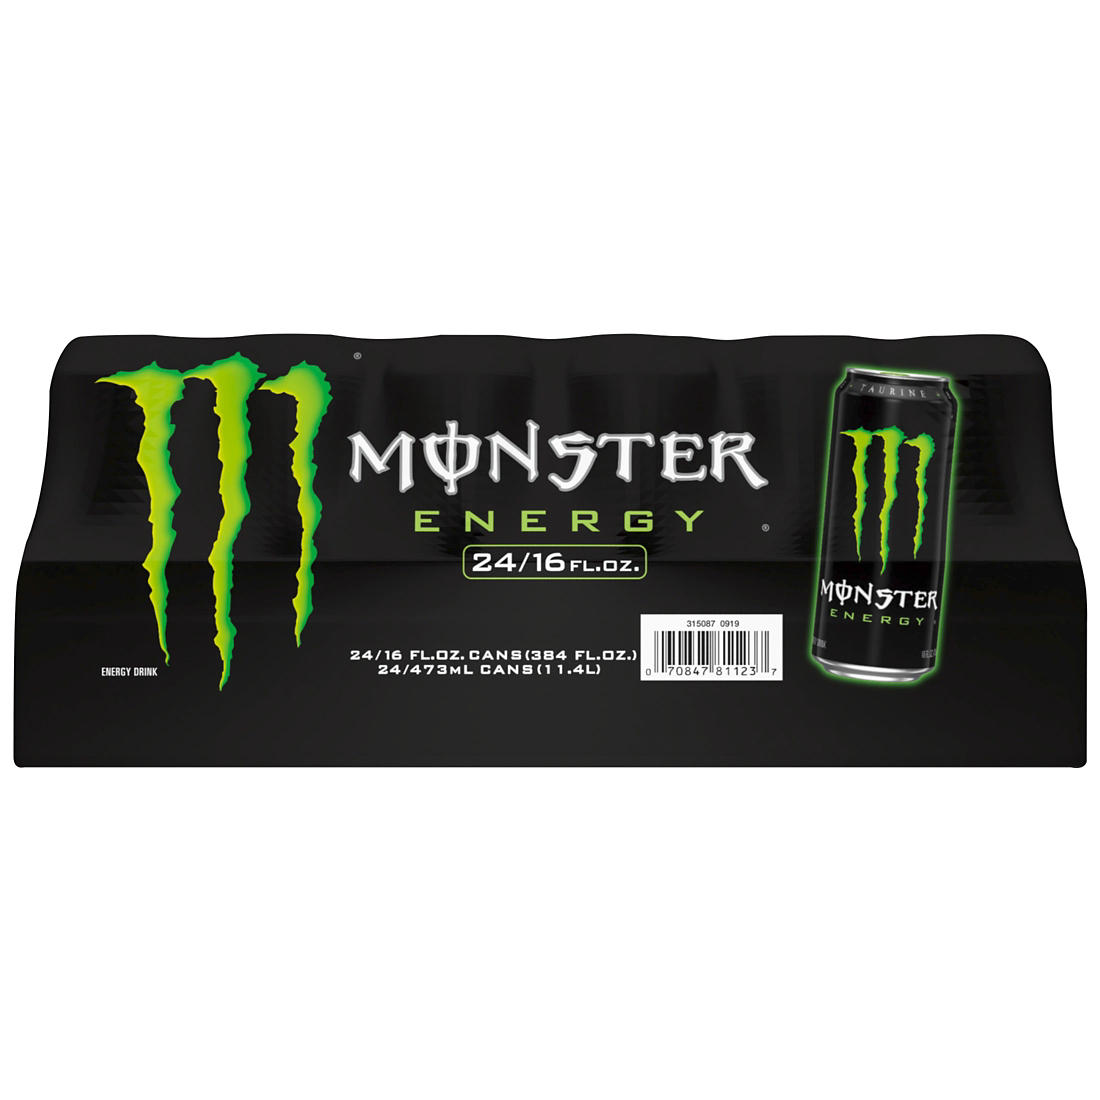 Monster Energy Drink, Original Flavor, 24 ct /16 oz